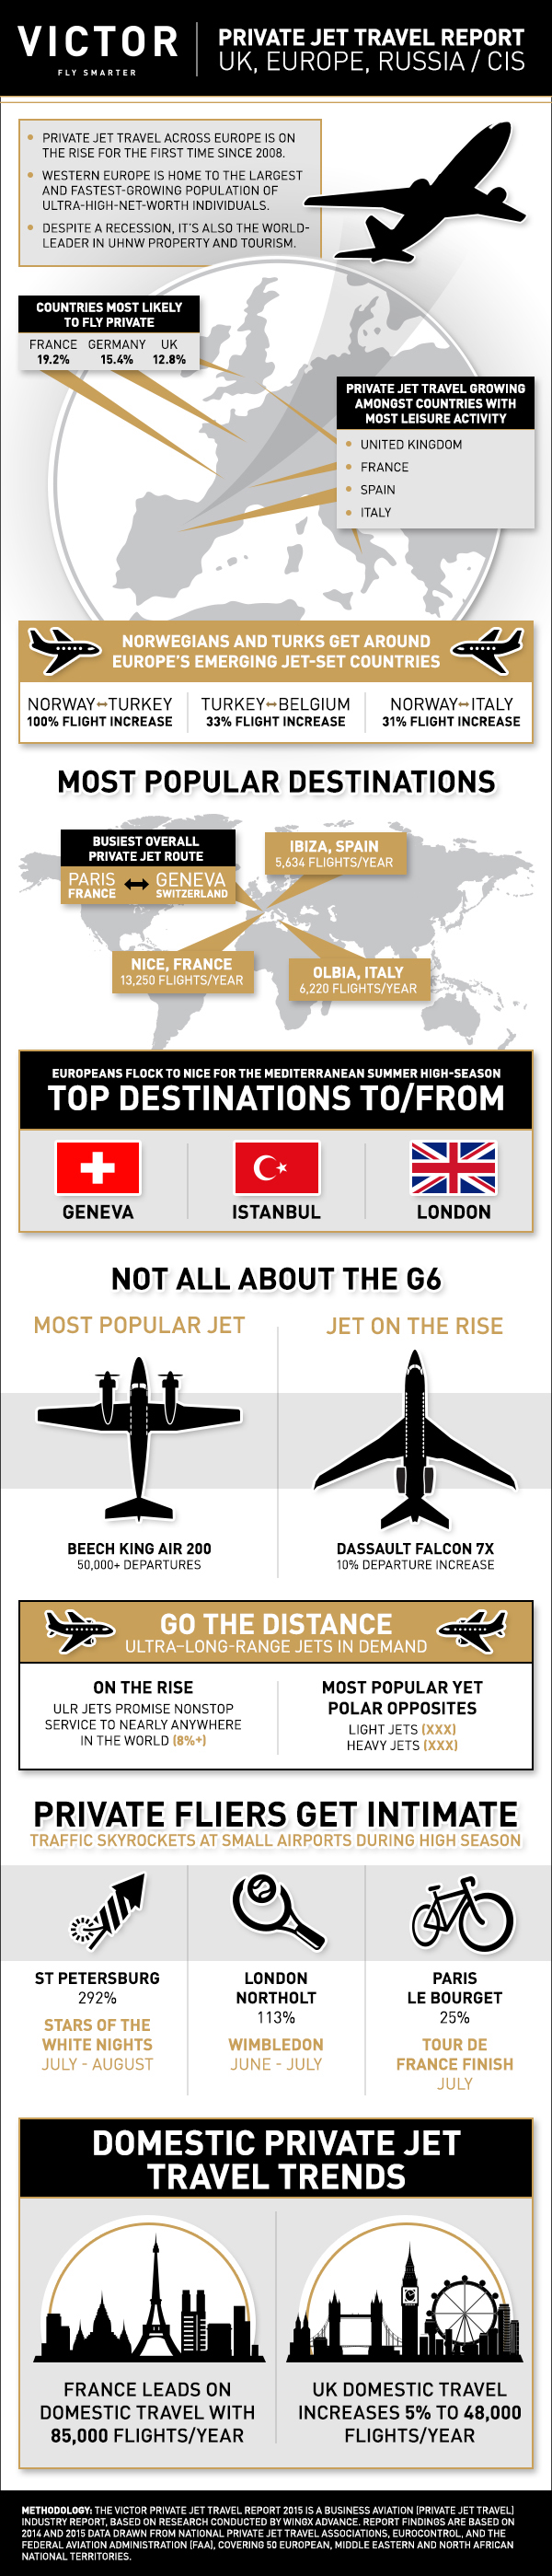 PrivateJetTravel_Infographic1[1].jpg